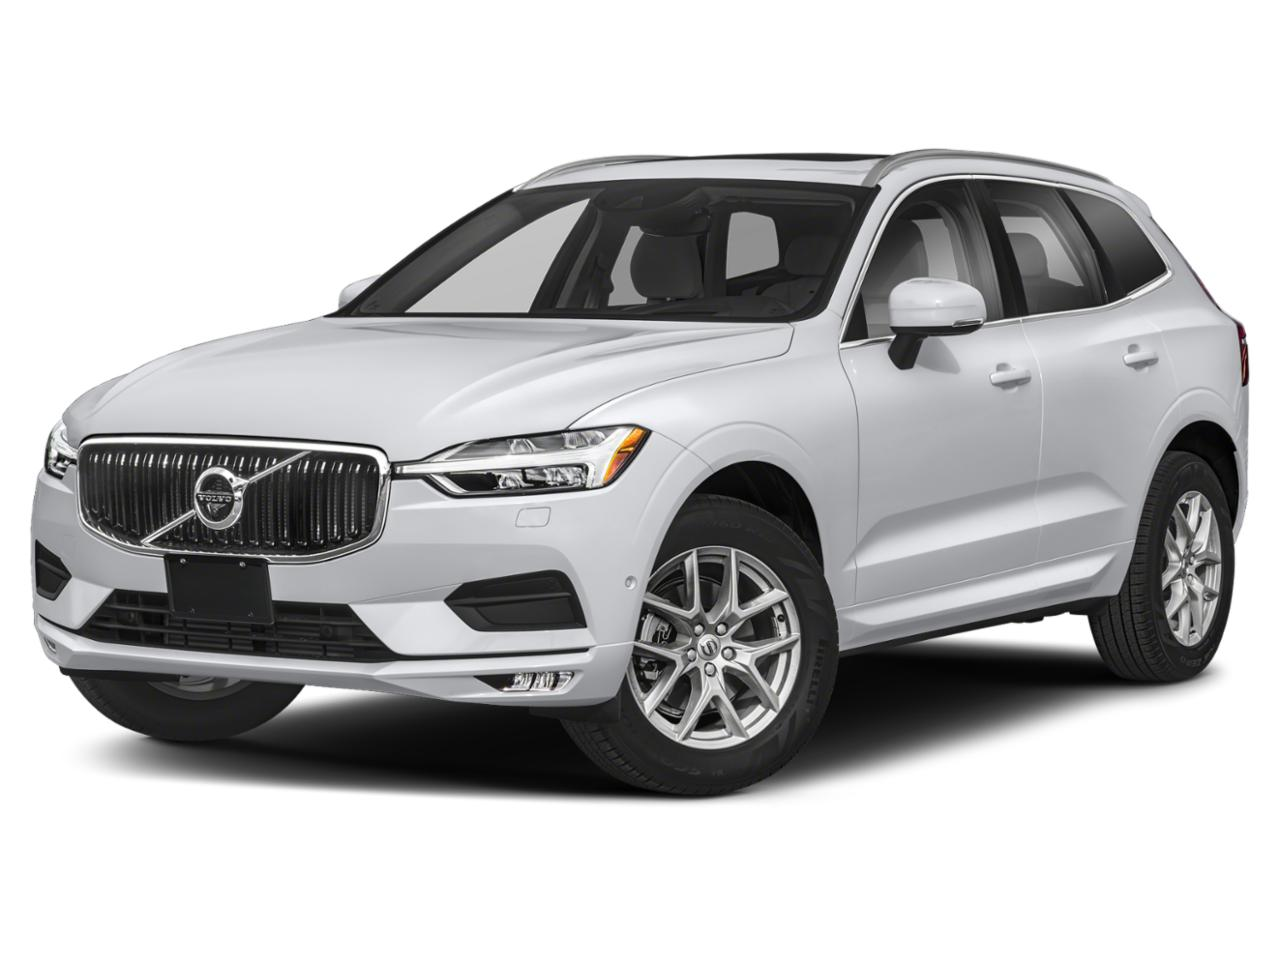 2018 Volvo XC60 Vehicle Photo in ROCKVILLE, MD 20852-1252